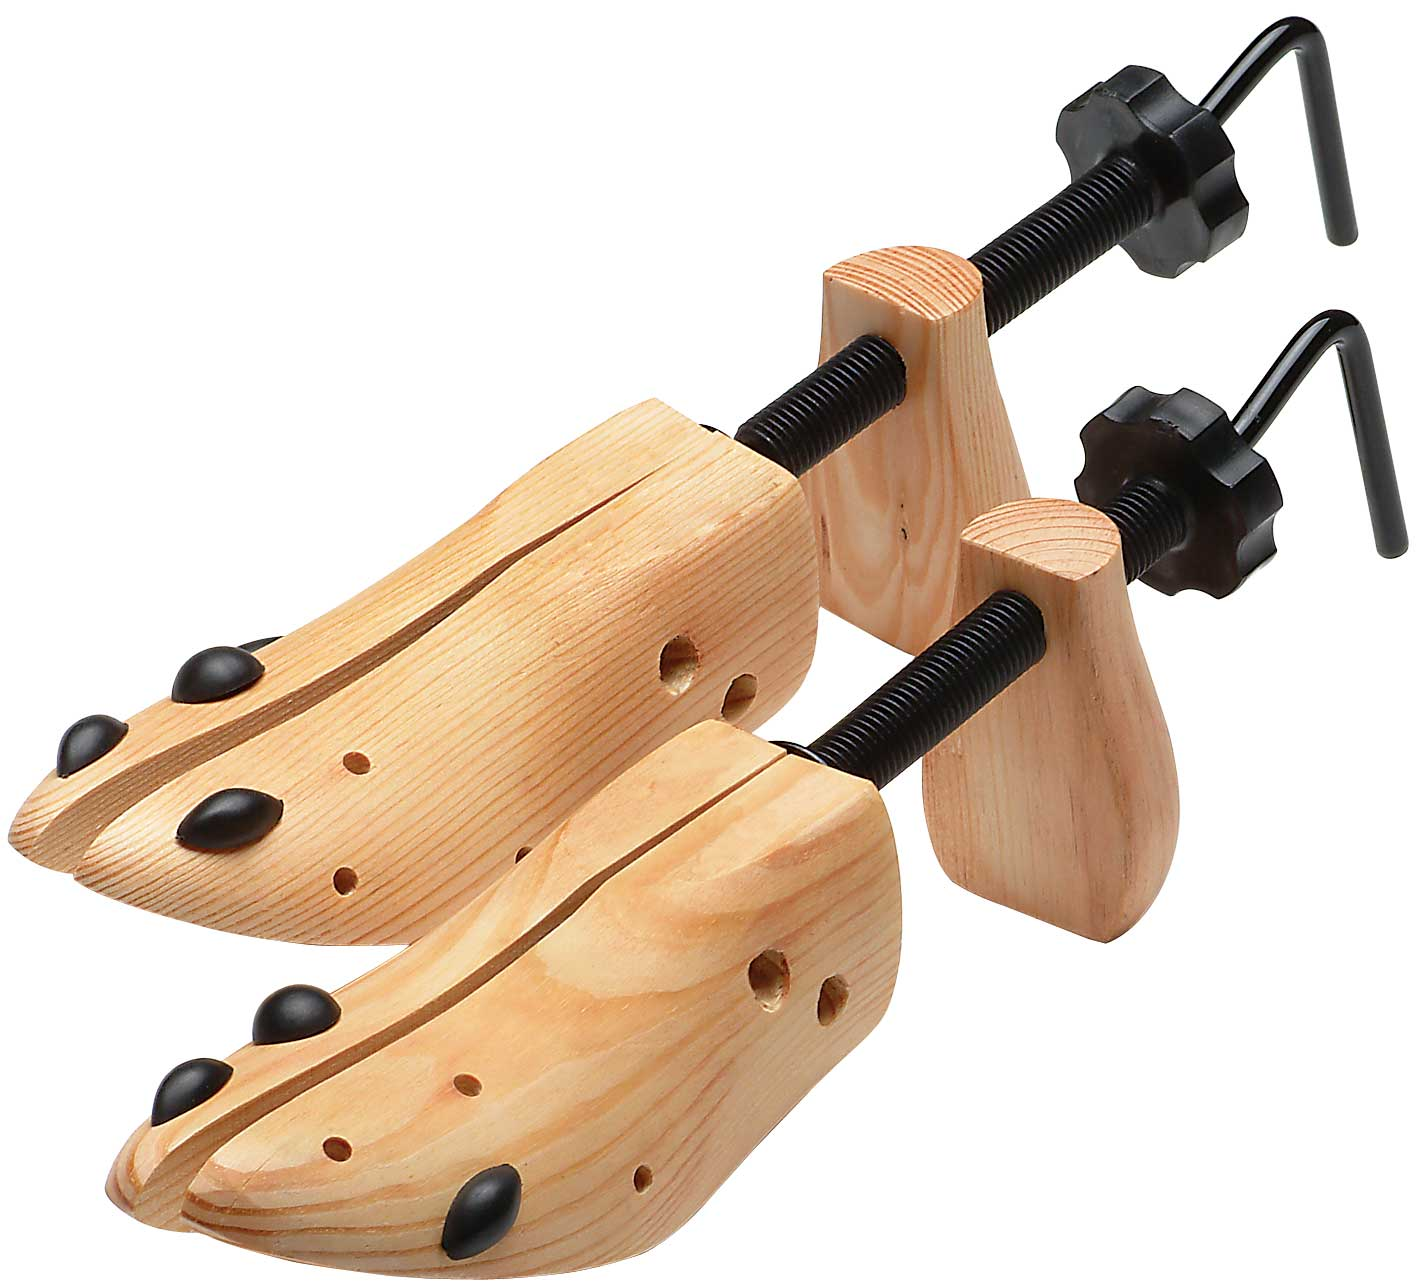 Details about Deluxe Shoe Stretcher Set of 2 by EasyComforts